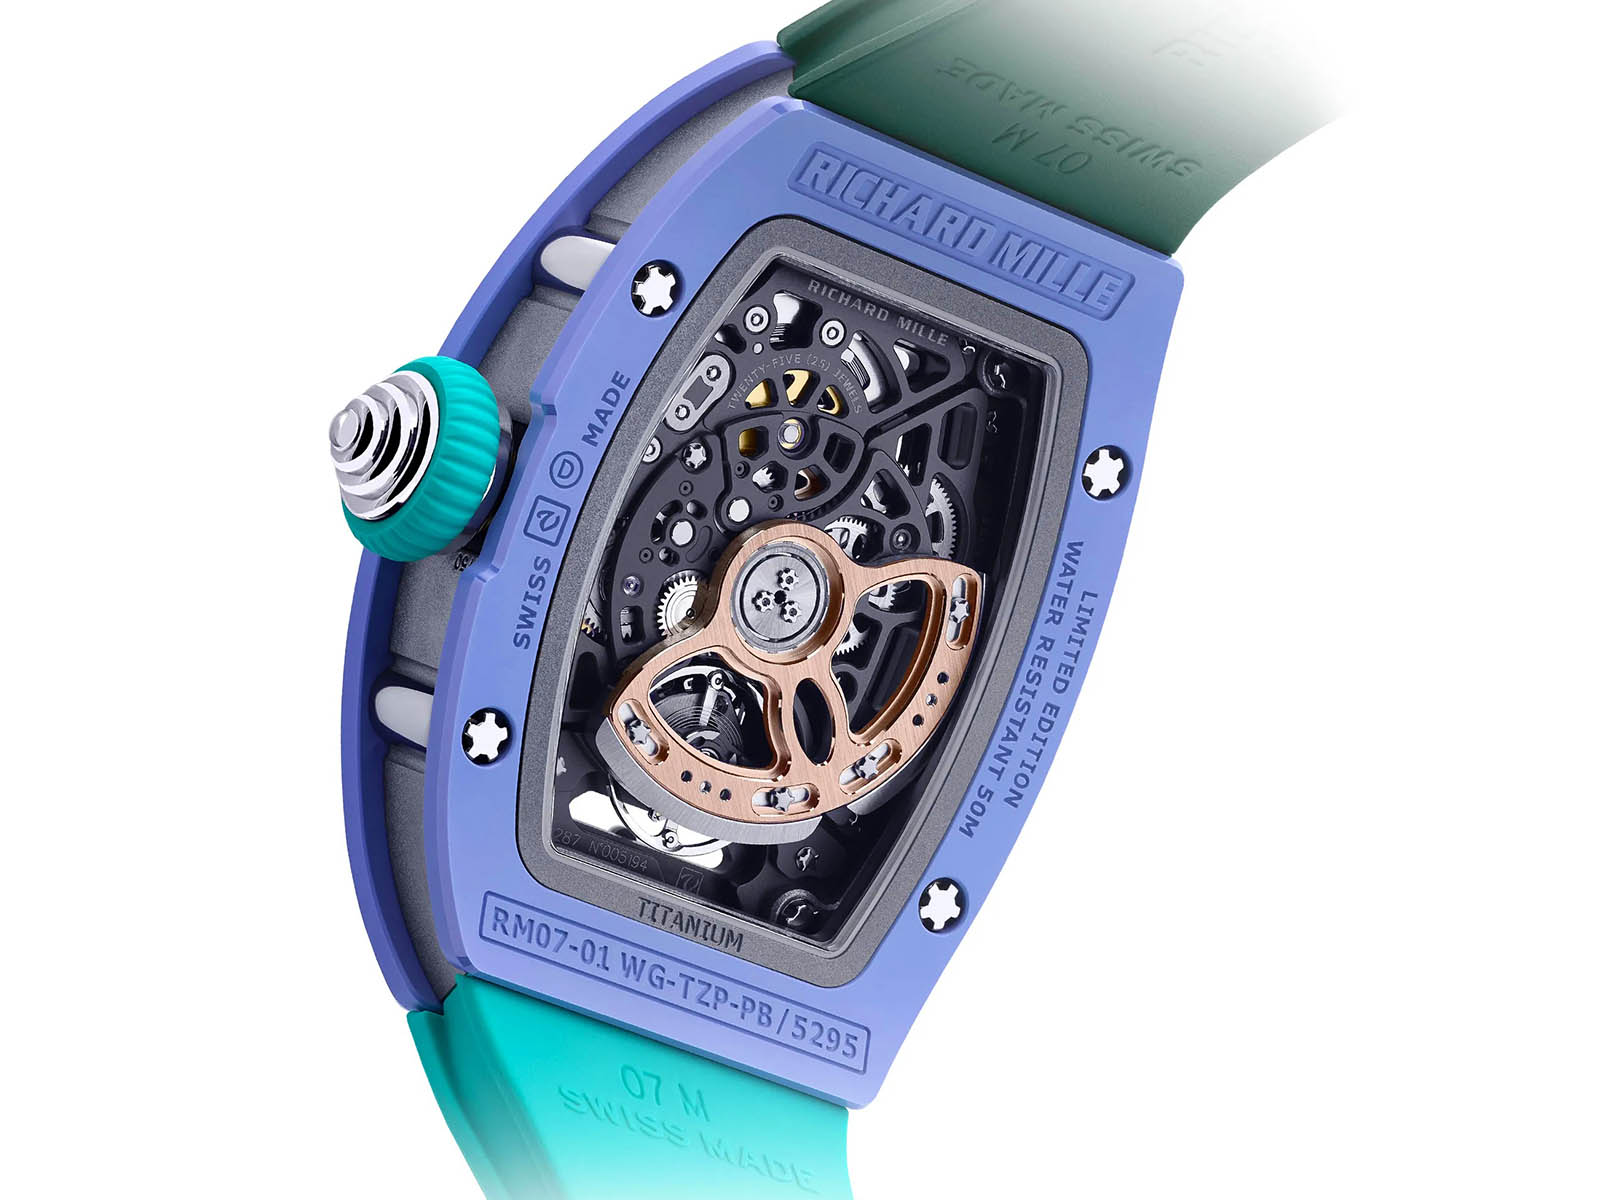 richard-mille-rm-07-01-colored-ceramics-collection-7.jpg